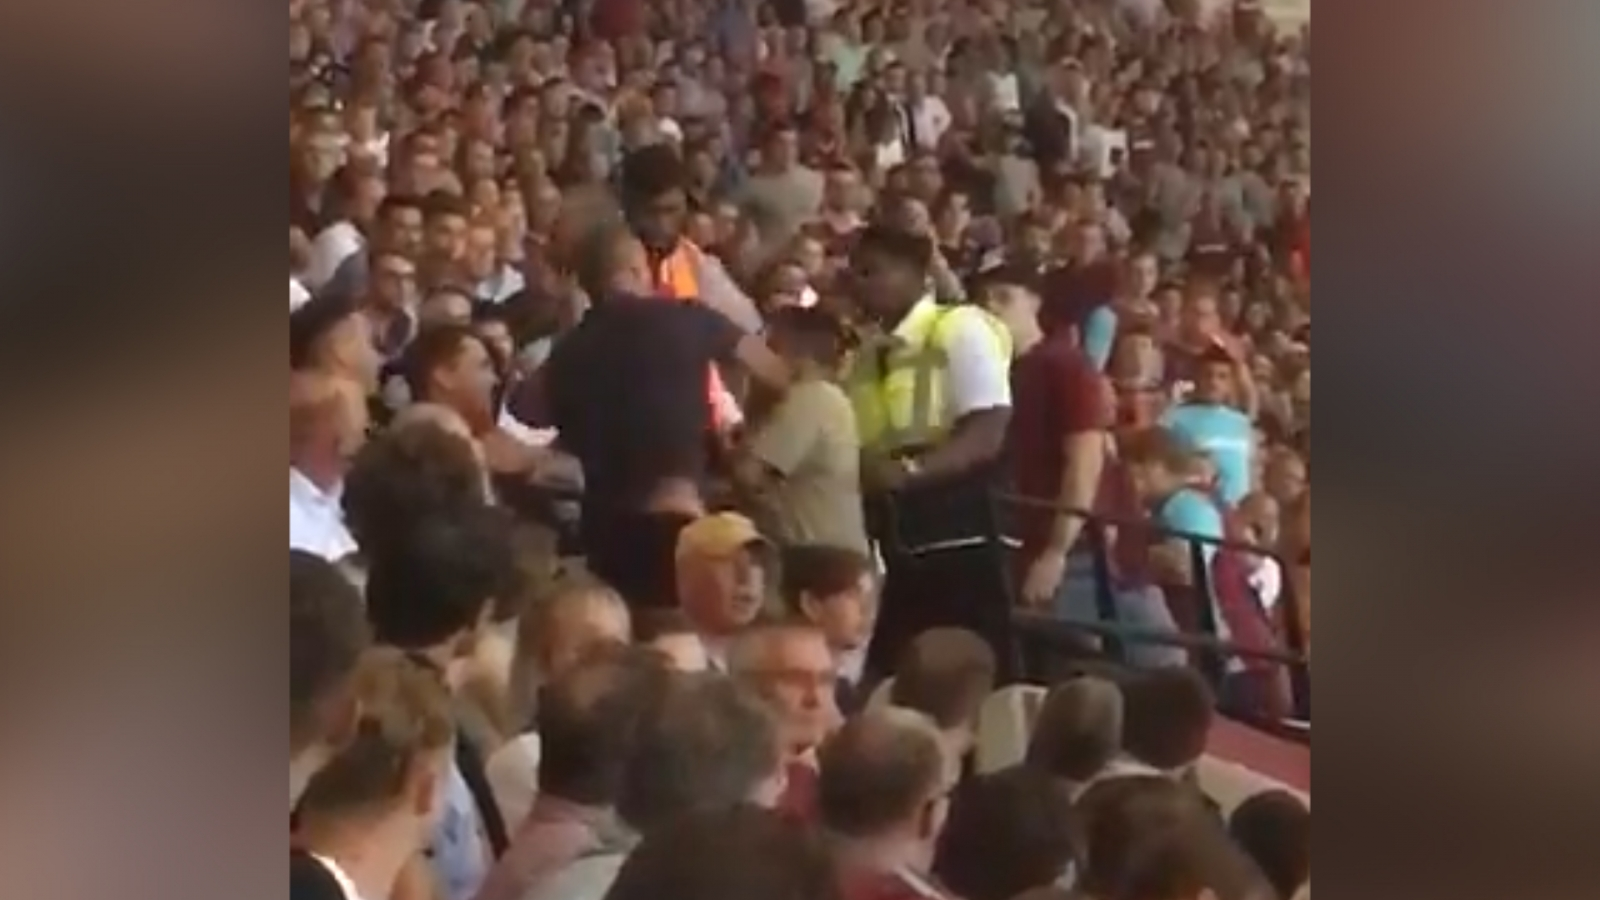 Viral video shows West Ham fans fighting among themselves at London Stadium